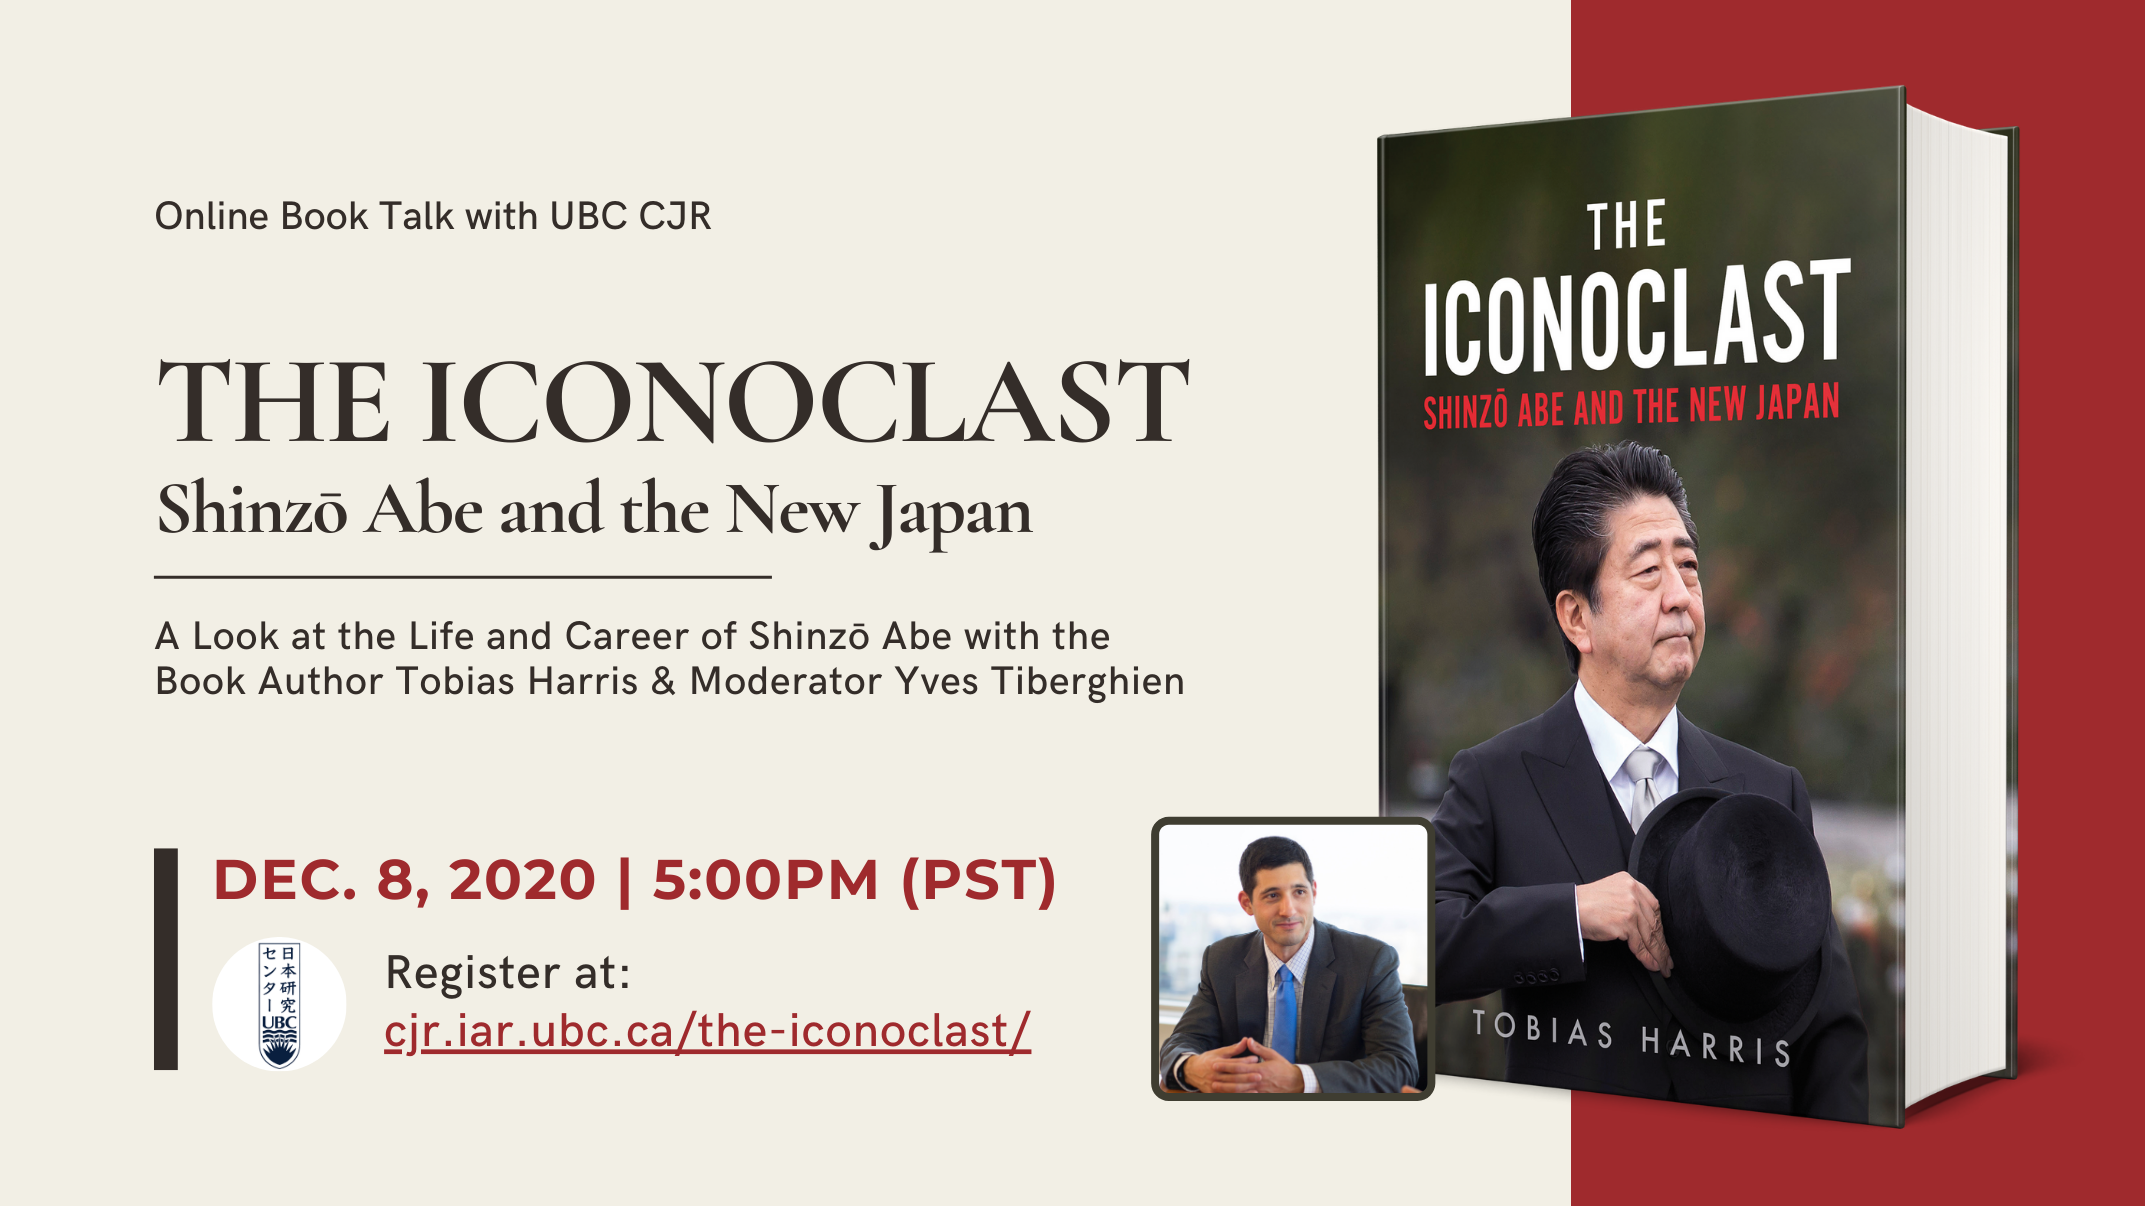 Promotional image for the book talk event on December 8th at 5PM (PST). Image contains event information, picture of the book Th Iconoclast: Shinzo Abe and the New Japan, and the author's picture Tobias Harris.